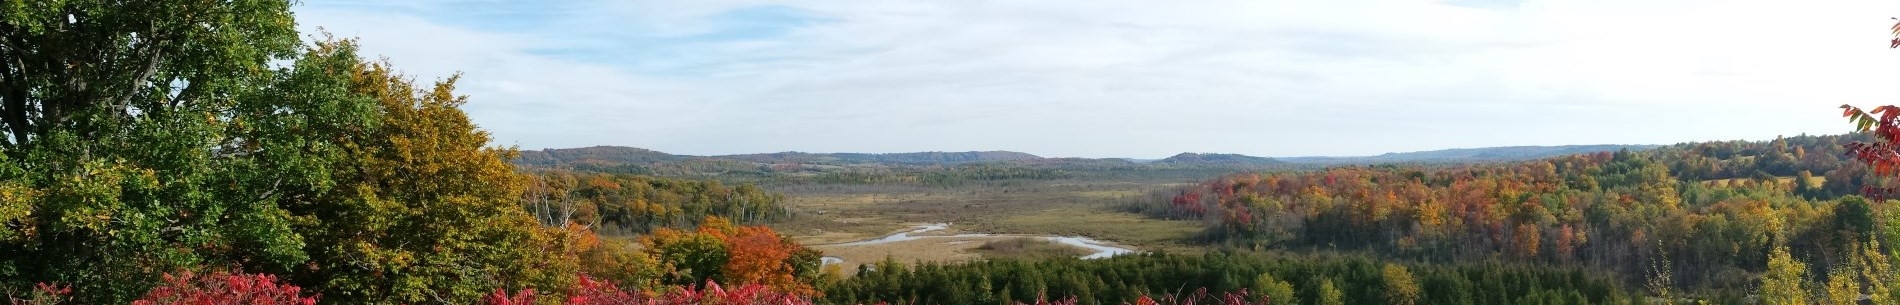 View of Windy River Conservation Area from the viewing platform